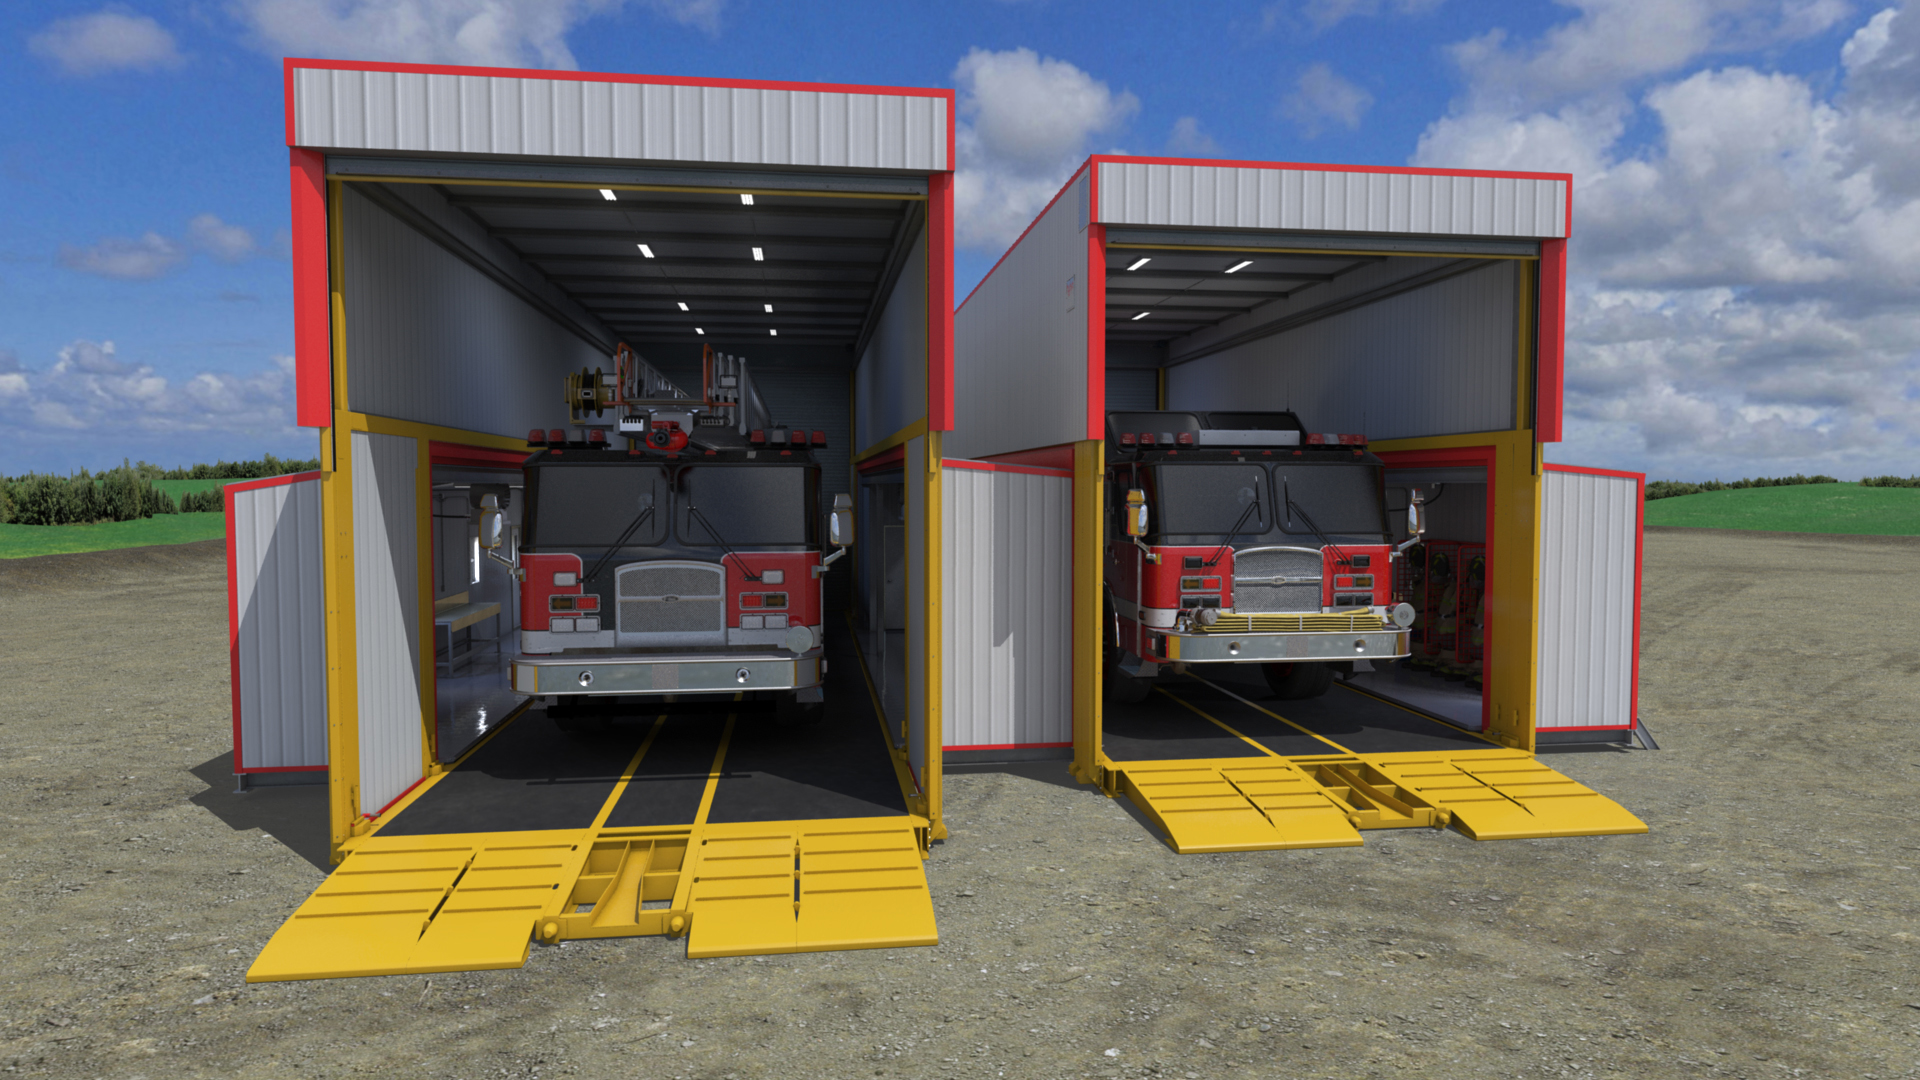 extreme portable buildings trans4mer fire truck bay thumbnail